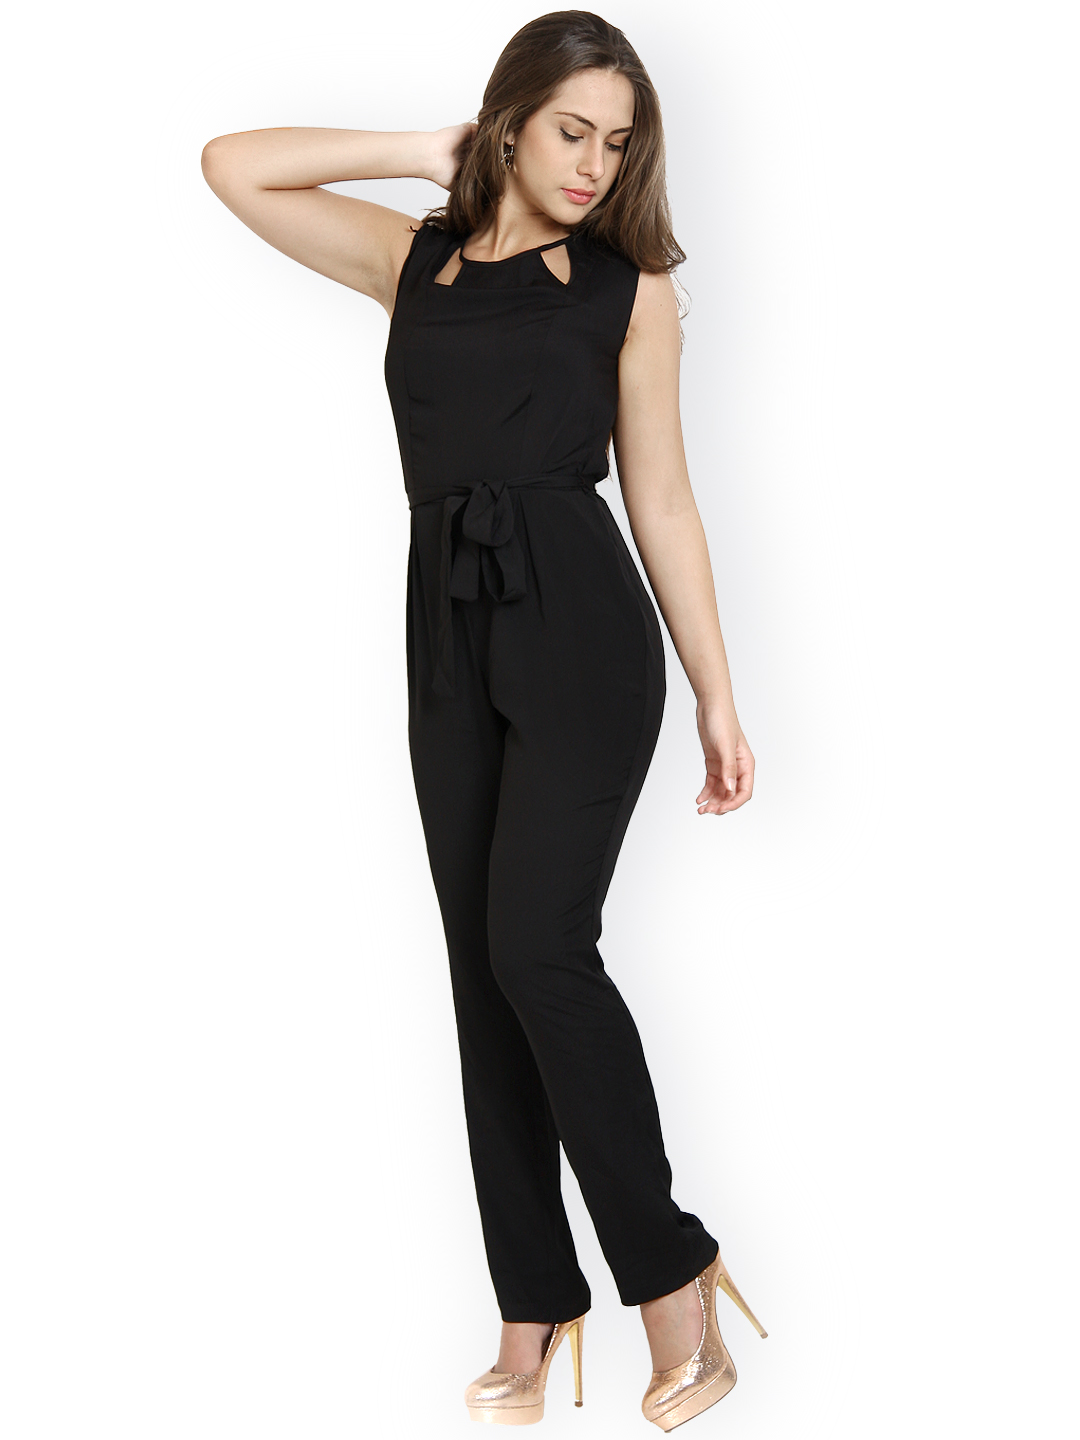 Myntra Avirate Women Black Jumpsuit 467438 | Buy Myntra Avirate Jumpsuit At Best Price Online ...